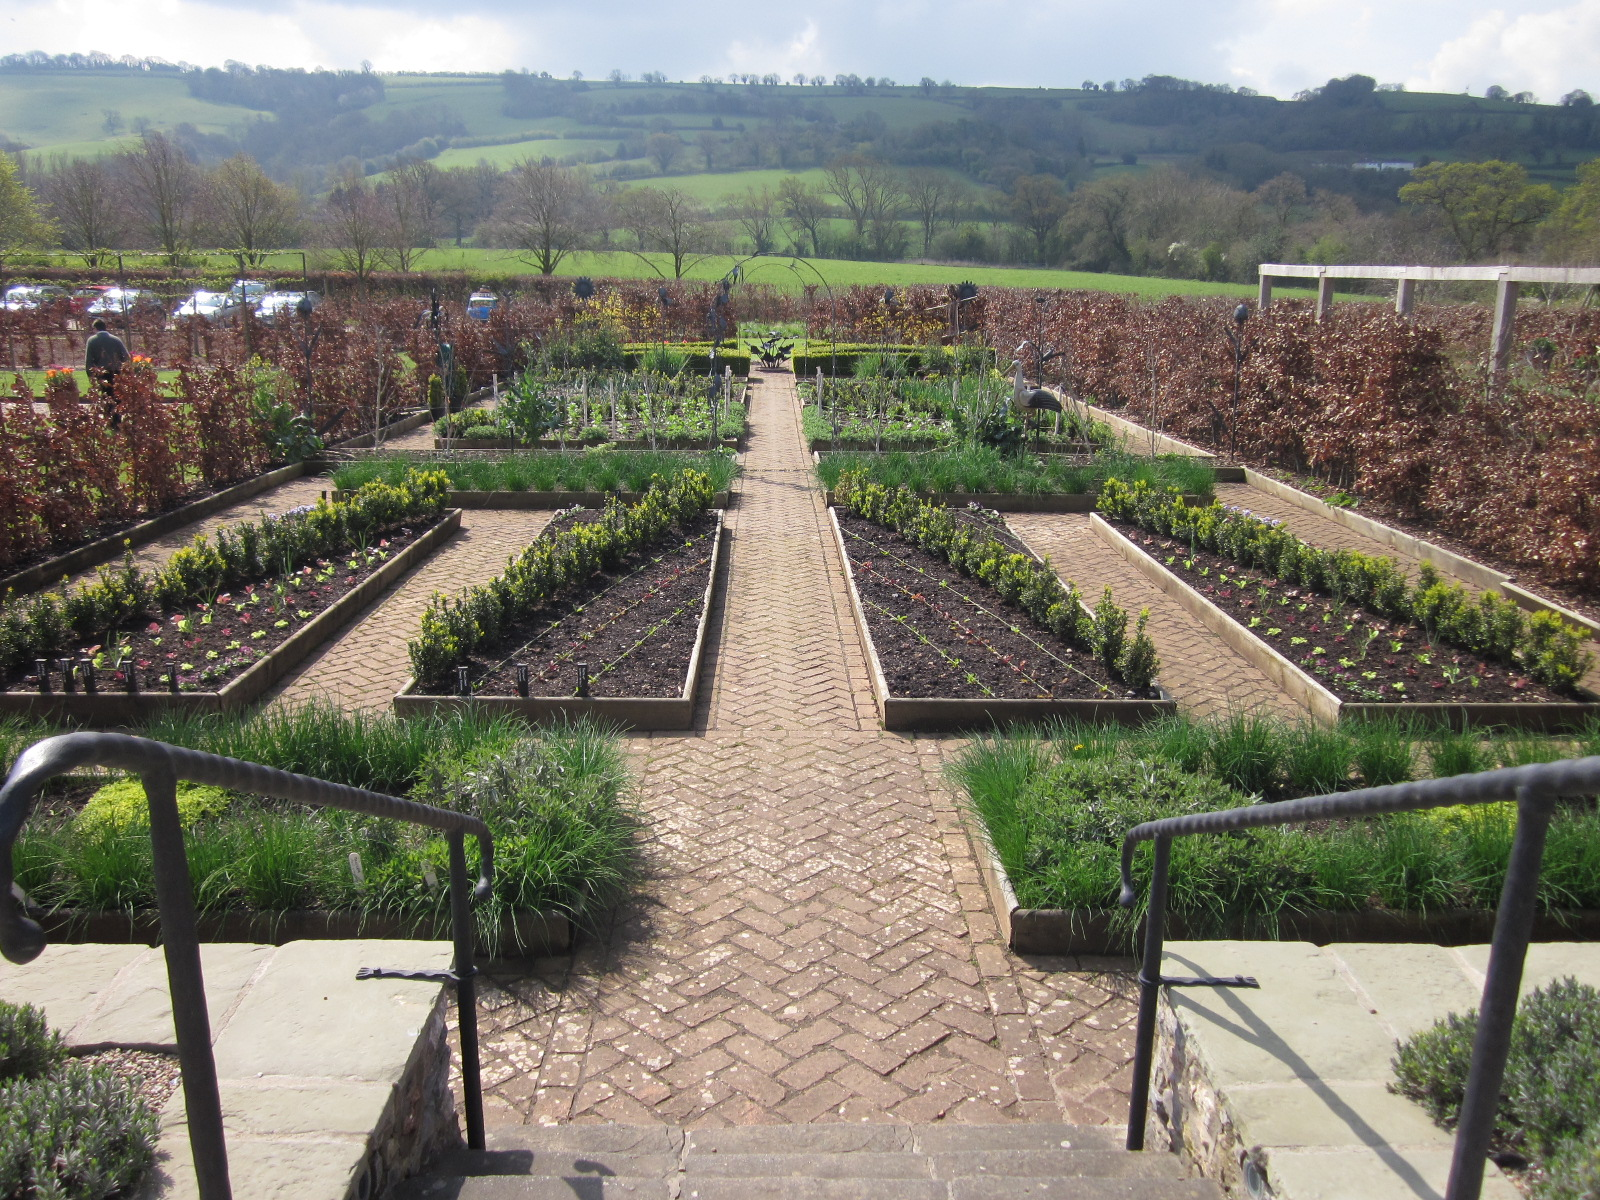 The Organic Garden At Holt Farm Revisited